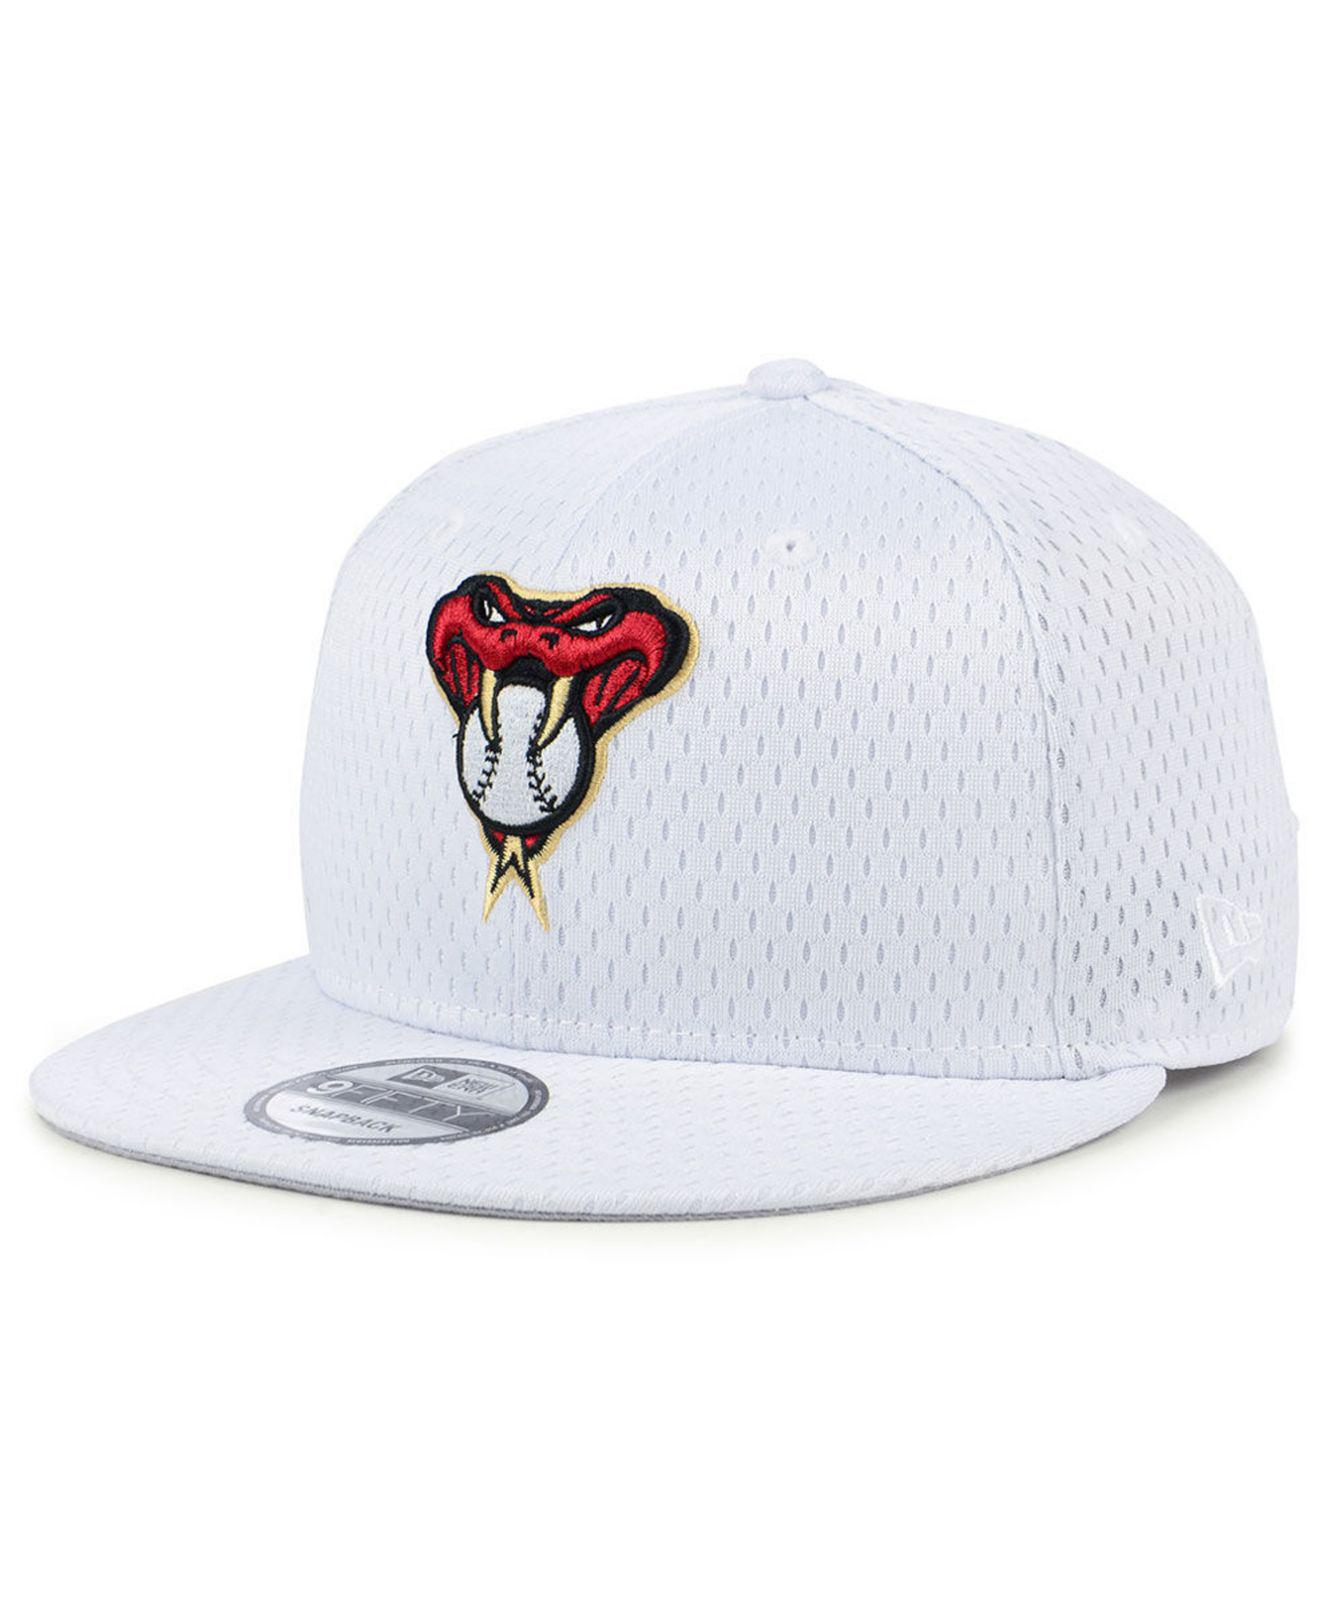 c0e410b739e KTZ. Men s White Arizona Diamondbacks Batting Practice Mesh 9fifty Snapback  Cap